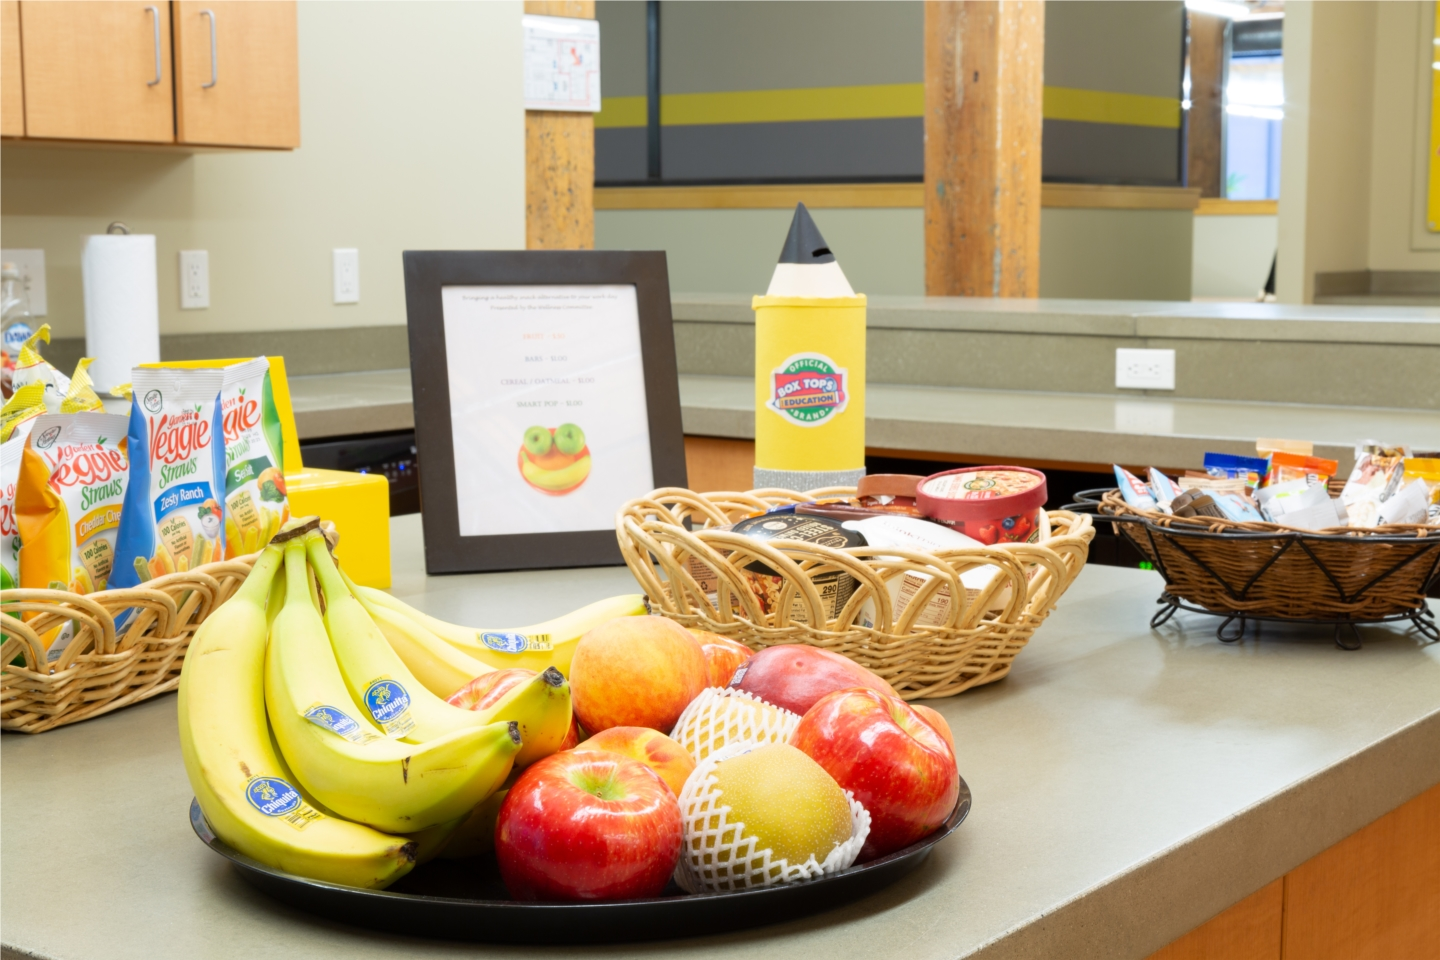 Fresh Fruit and snacks provided daily for employees to pick healthy alternatives